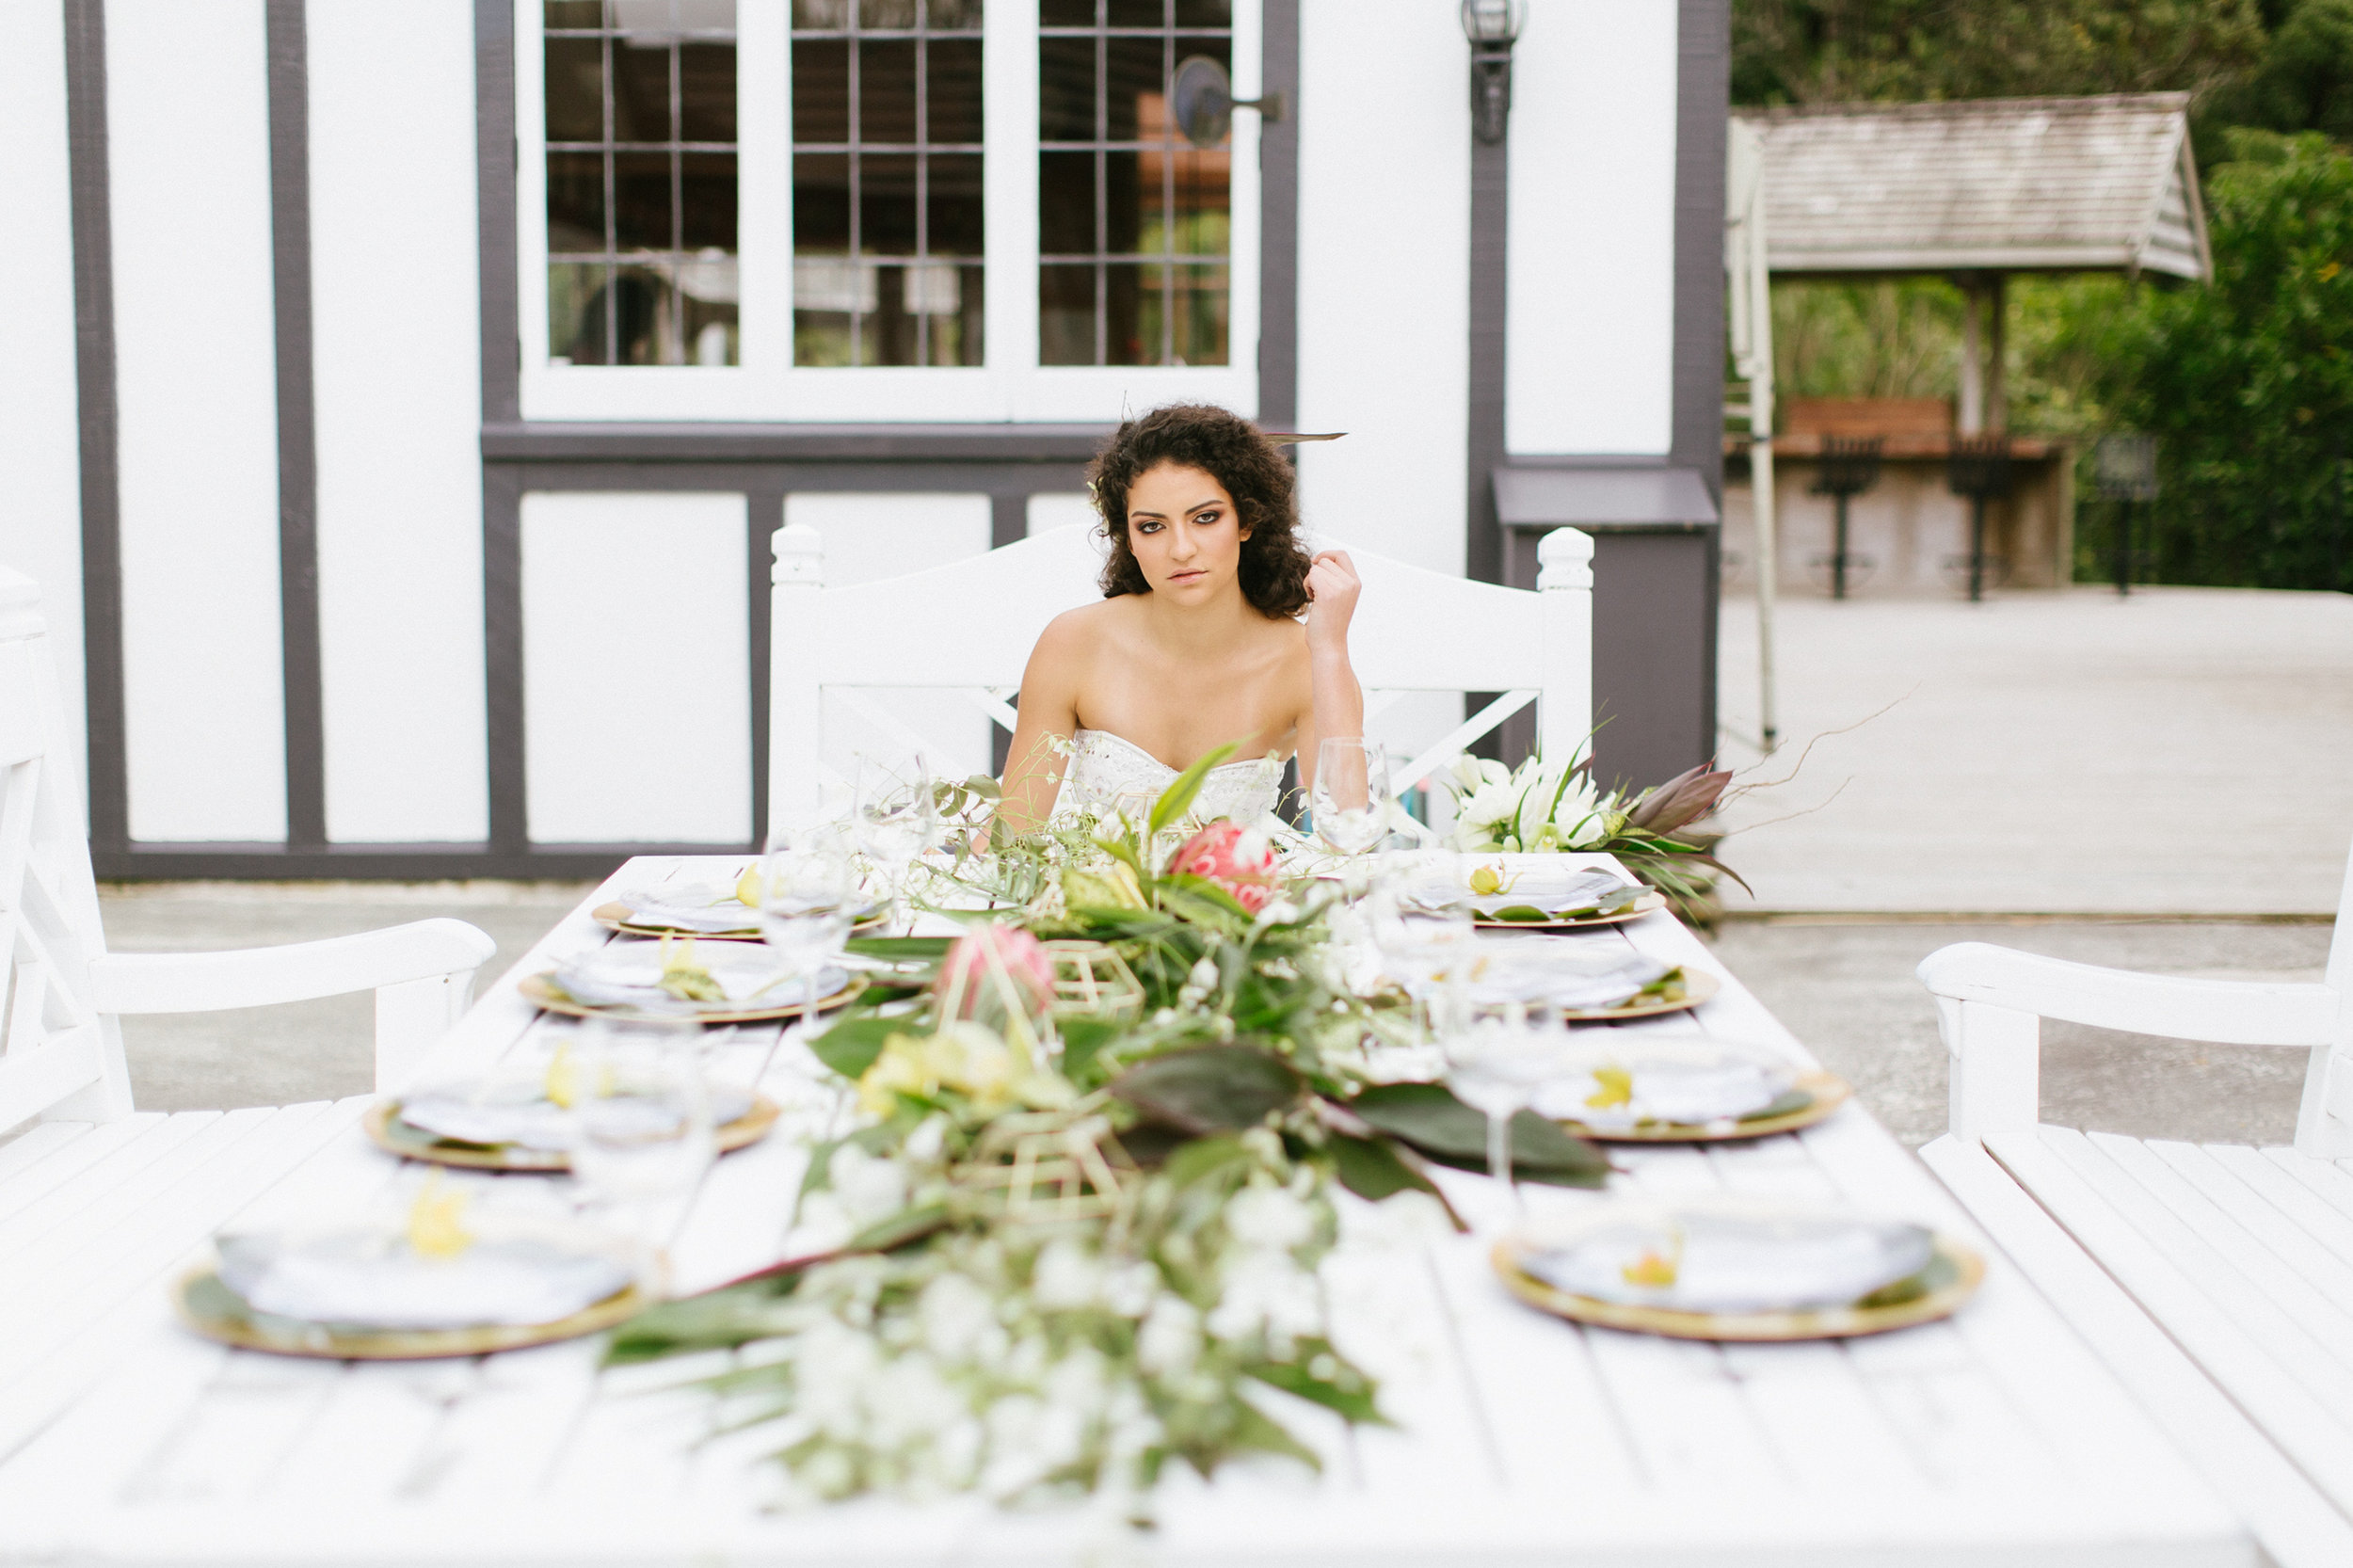 Tropical Wedding Dining Table Protea Orchids Garland Wedding Monstera Photoshoot Tablescape Bride Bouquet